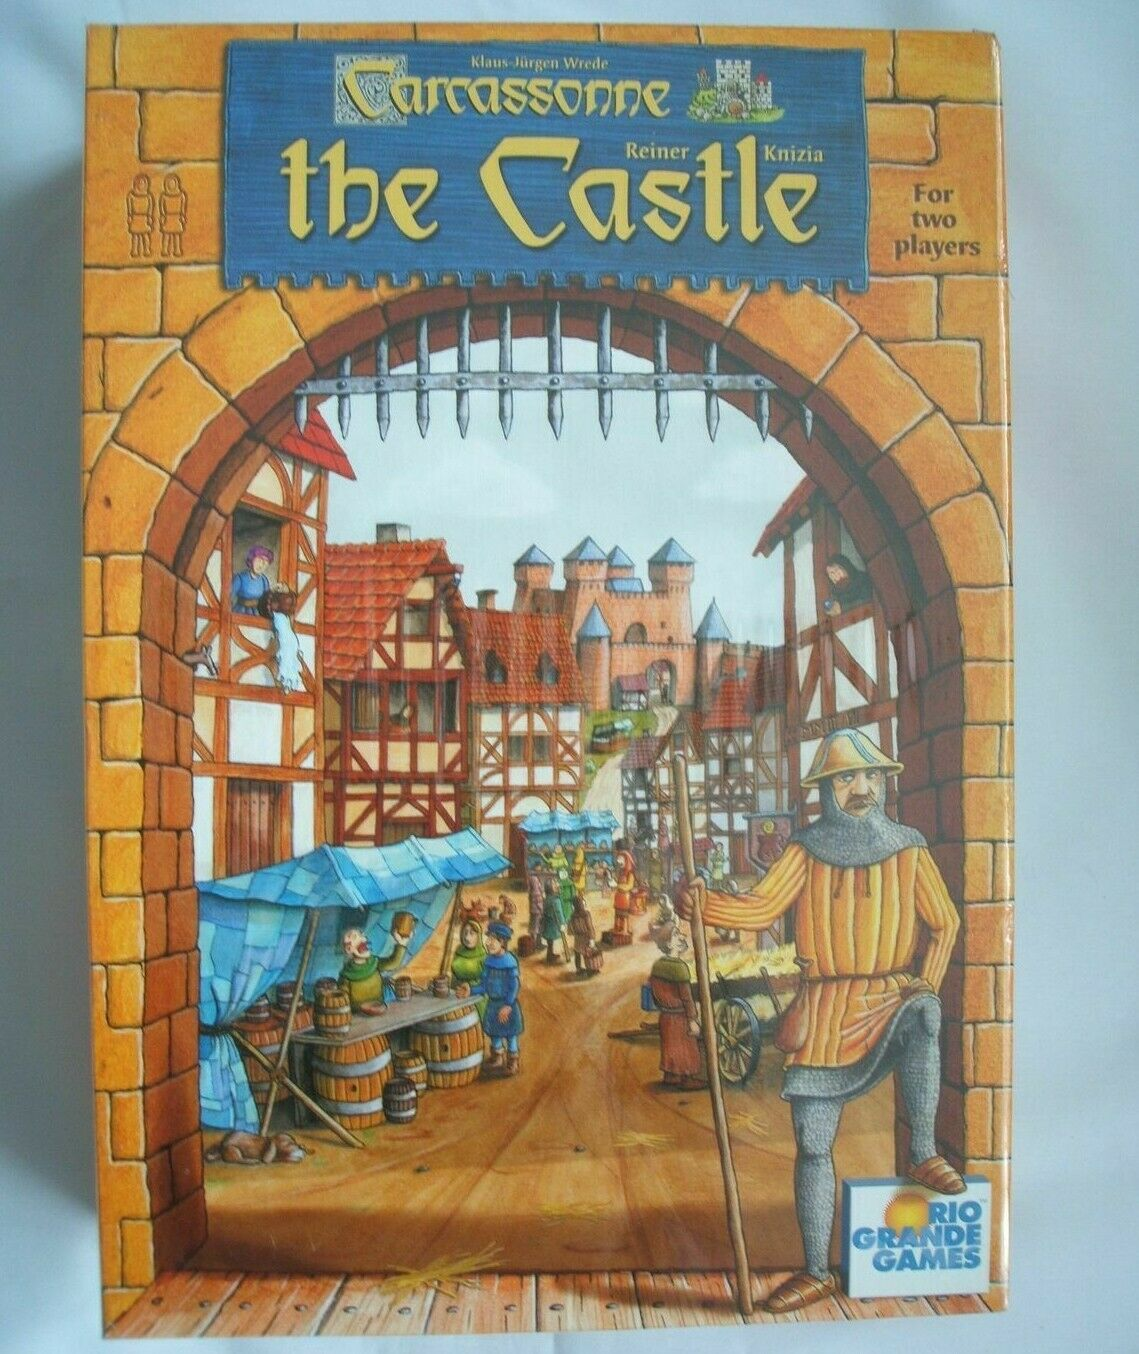 BRAND nouveau AND SEALED voitureCASSONNE  THE CASTLE BOARD GAME FROM RIO GRANDE GAMES  gros prix discount